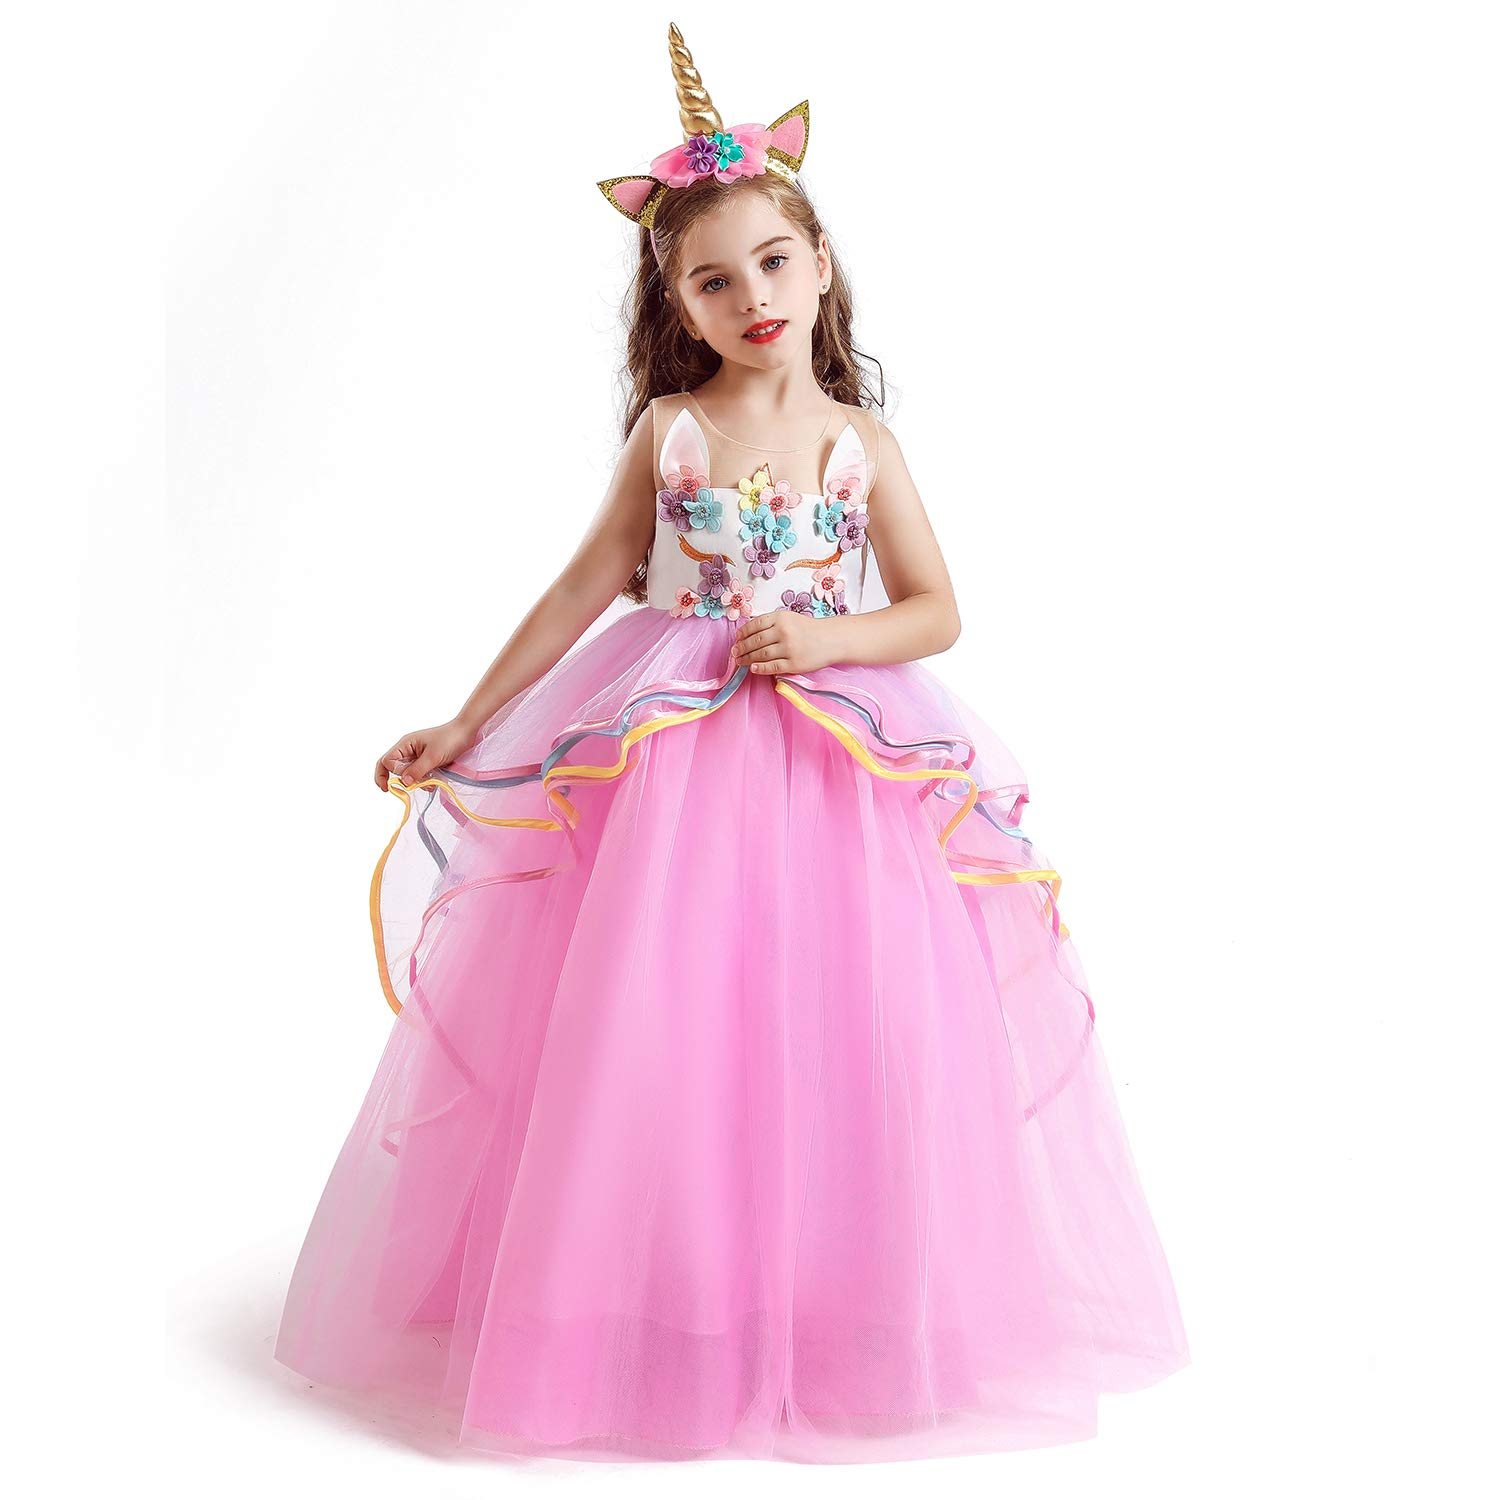 NNJXD Girls Unicorn Party Princess Long Dress Size (120) 4-5 Years Pink&